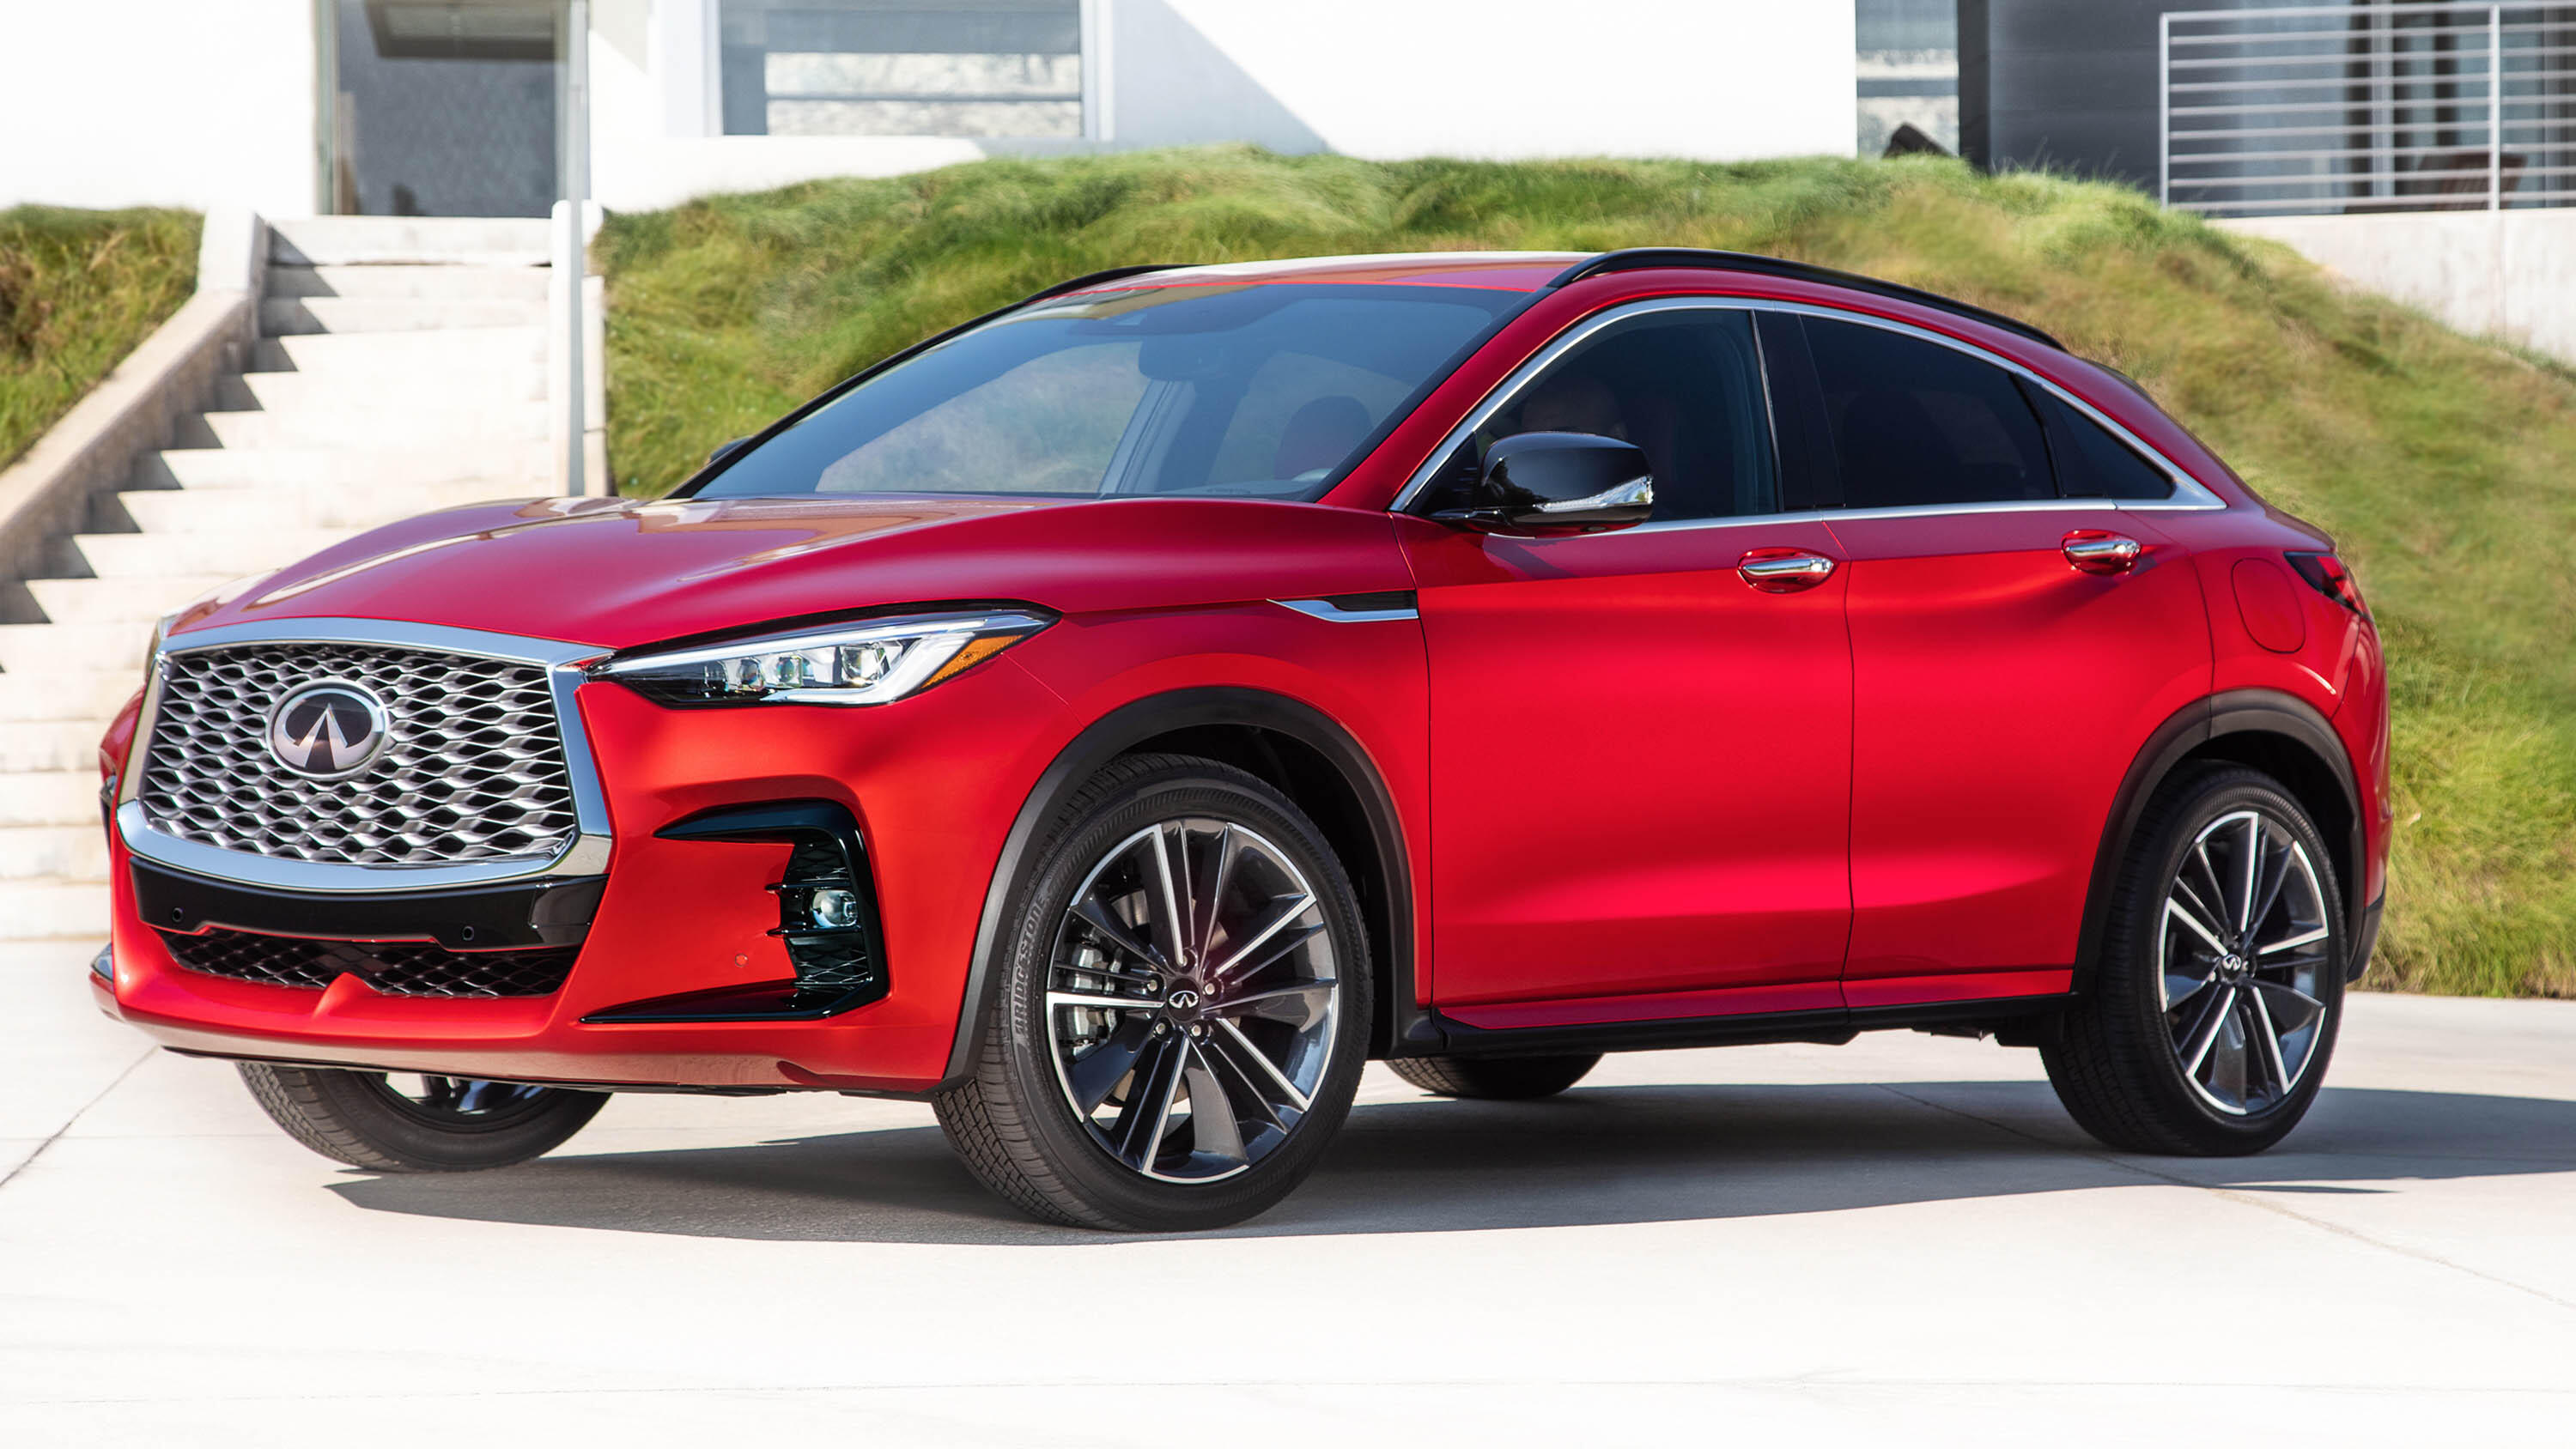 Video: Infiniti joins the coupe-like SUV segment with 2022 QX55